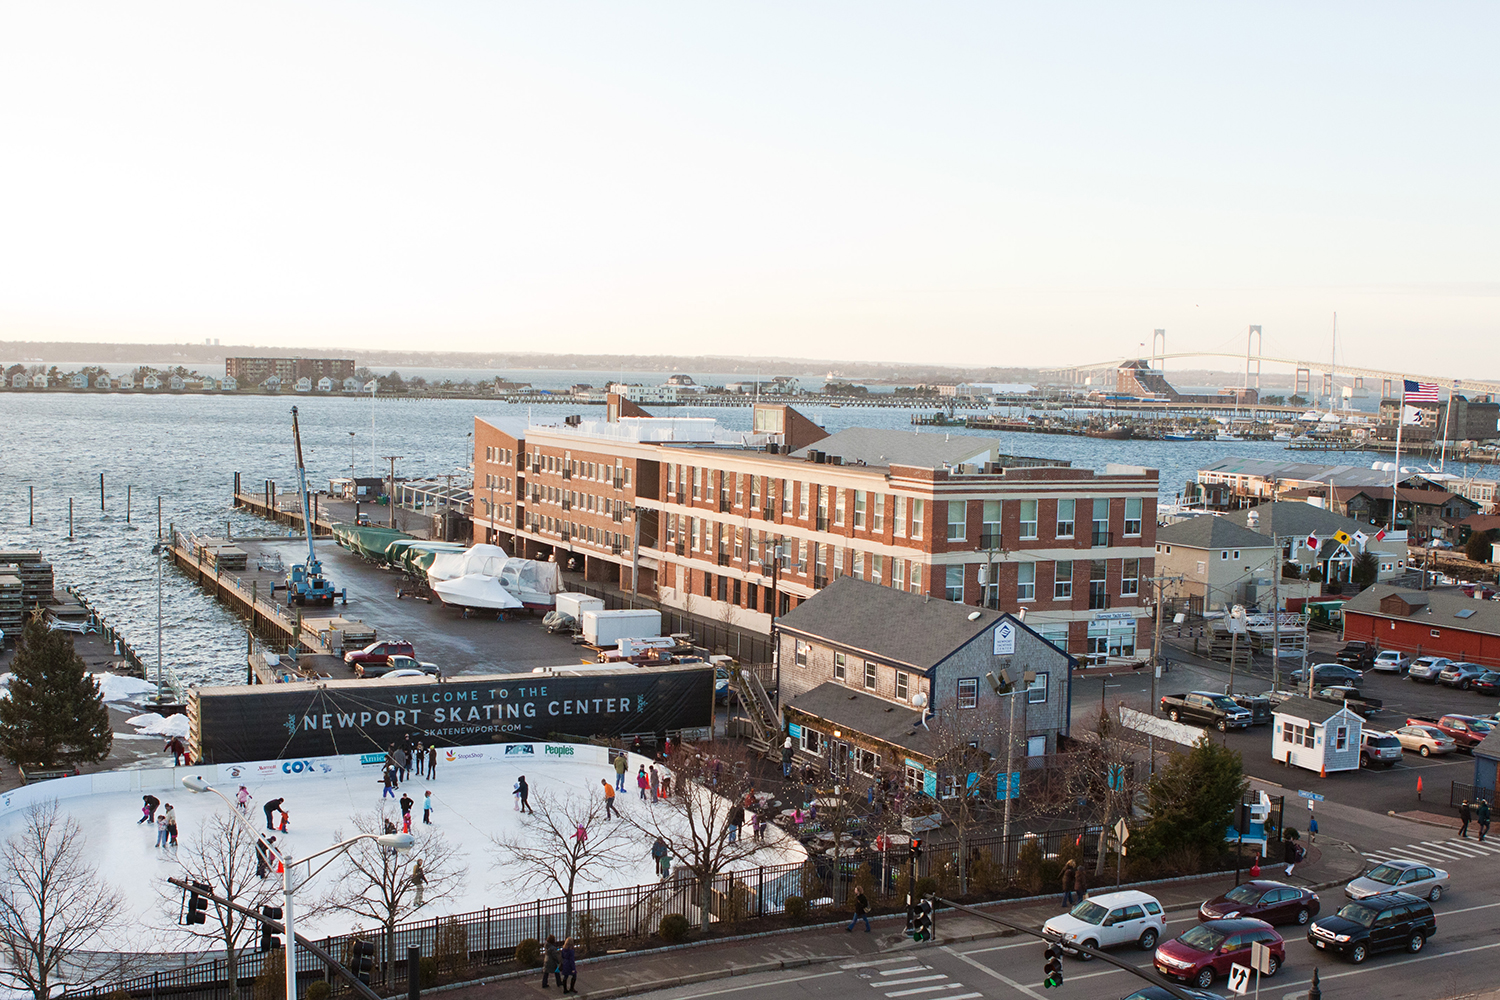 Newport-Ice-Skating-Center_Aerial-View_The-Chanler.jpg